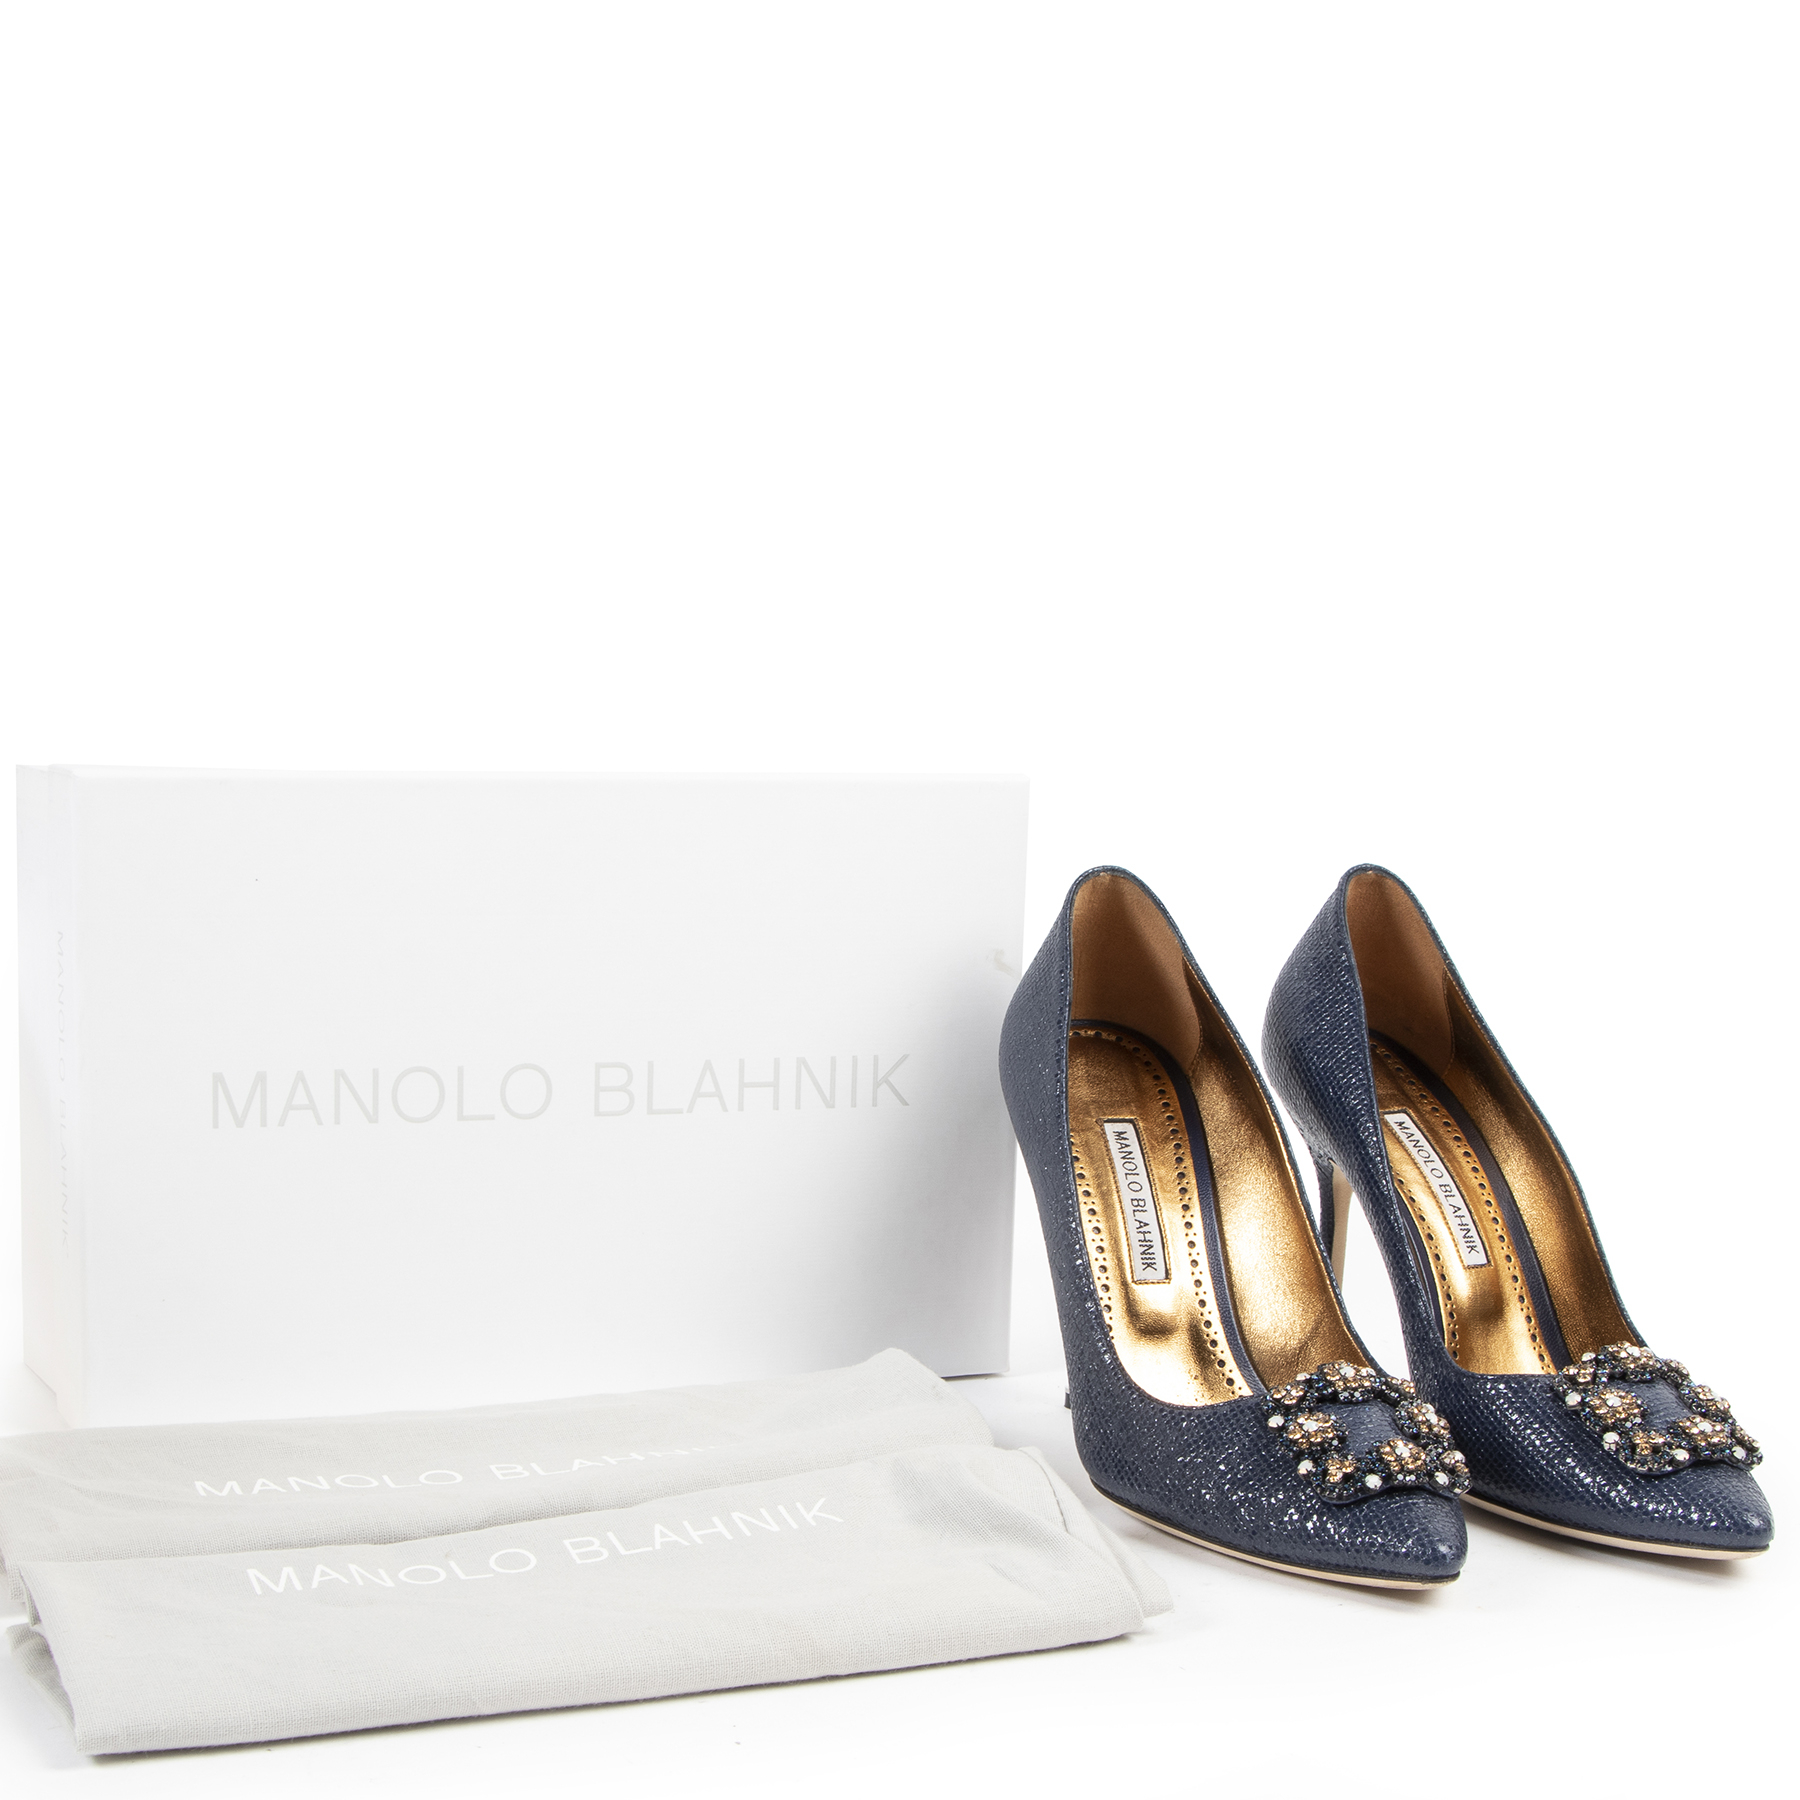 Manolo Blahnik Printed Jeweled Buckle Pumps - Size 40